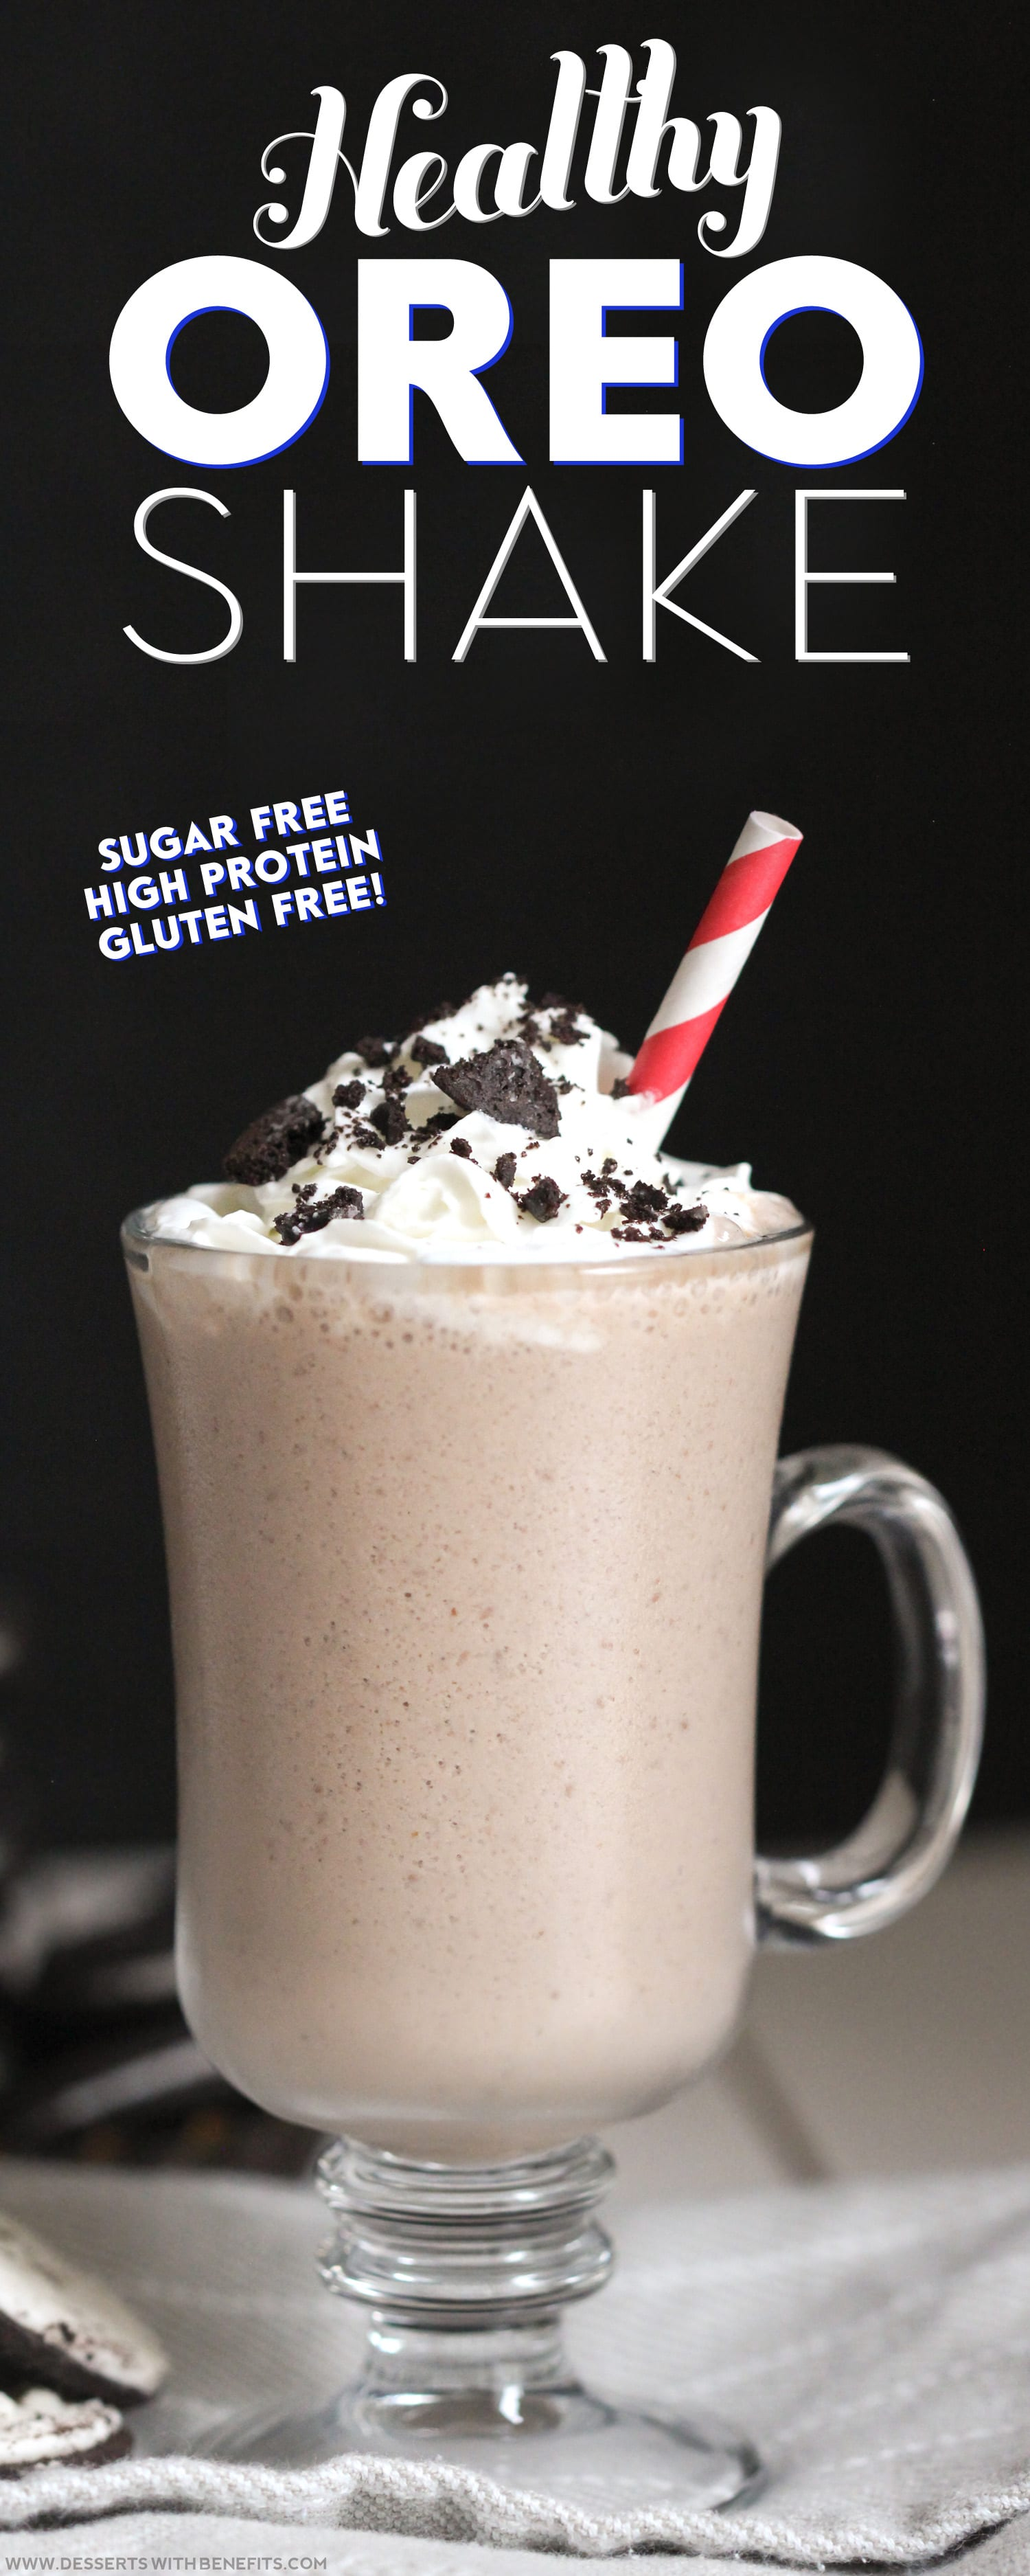 Healthy Oreo Shake Recipe refined sugar free high protein gluten